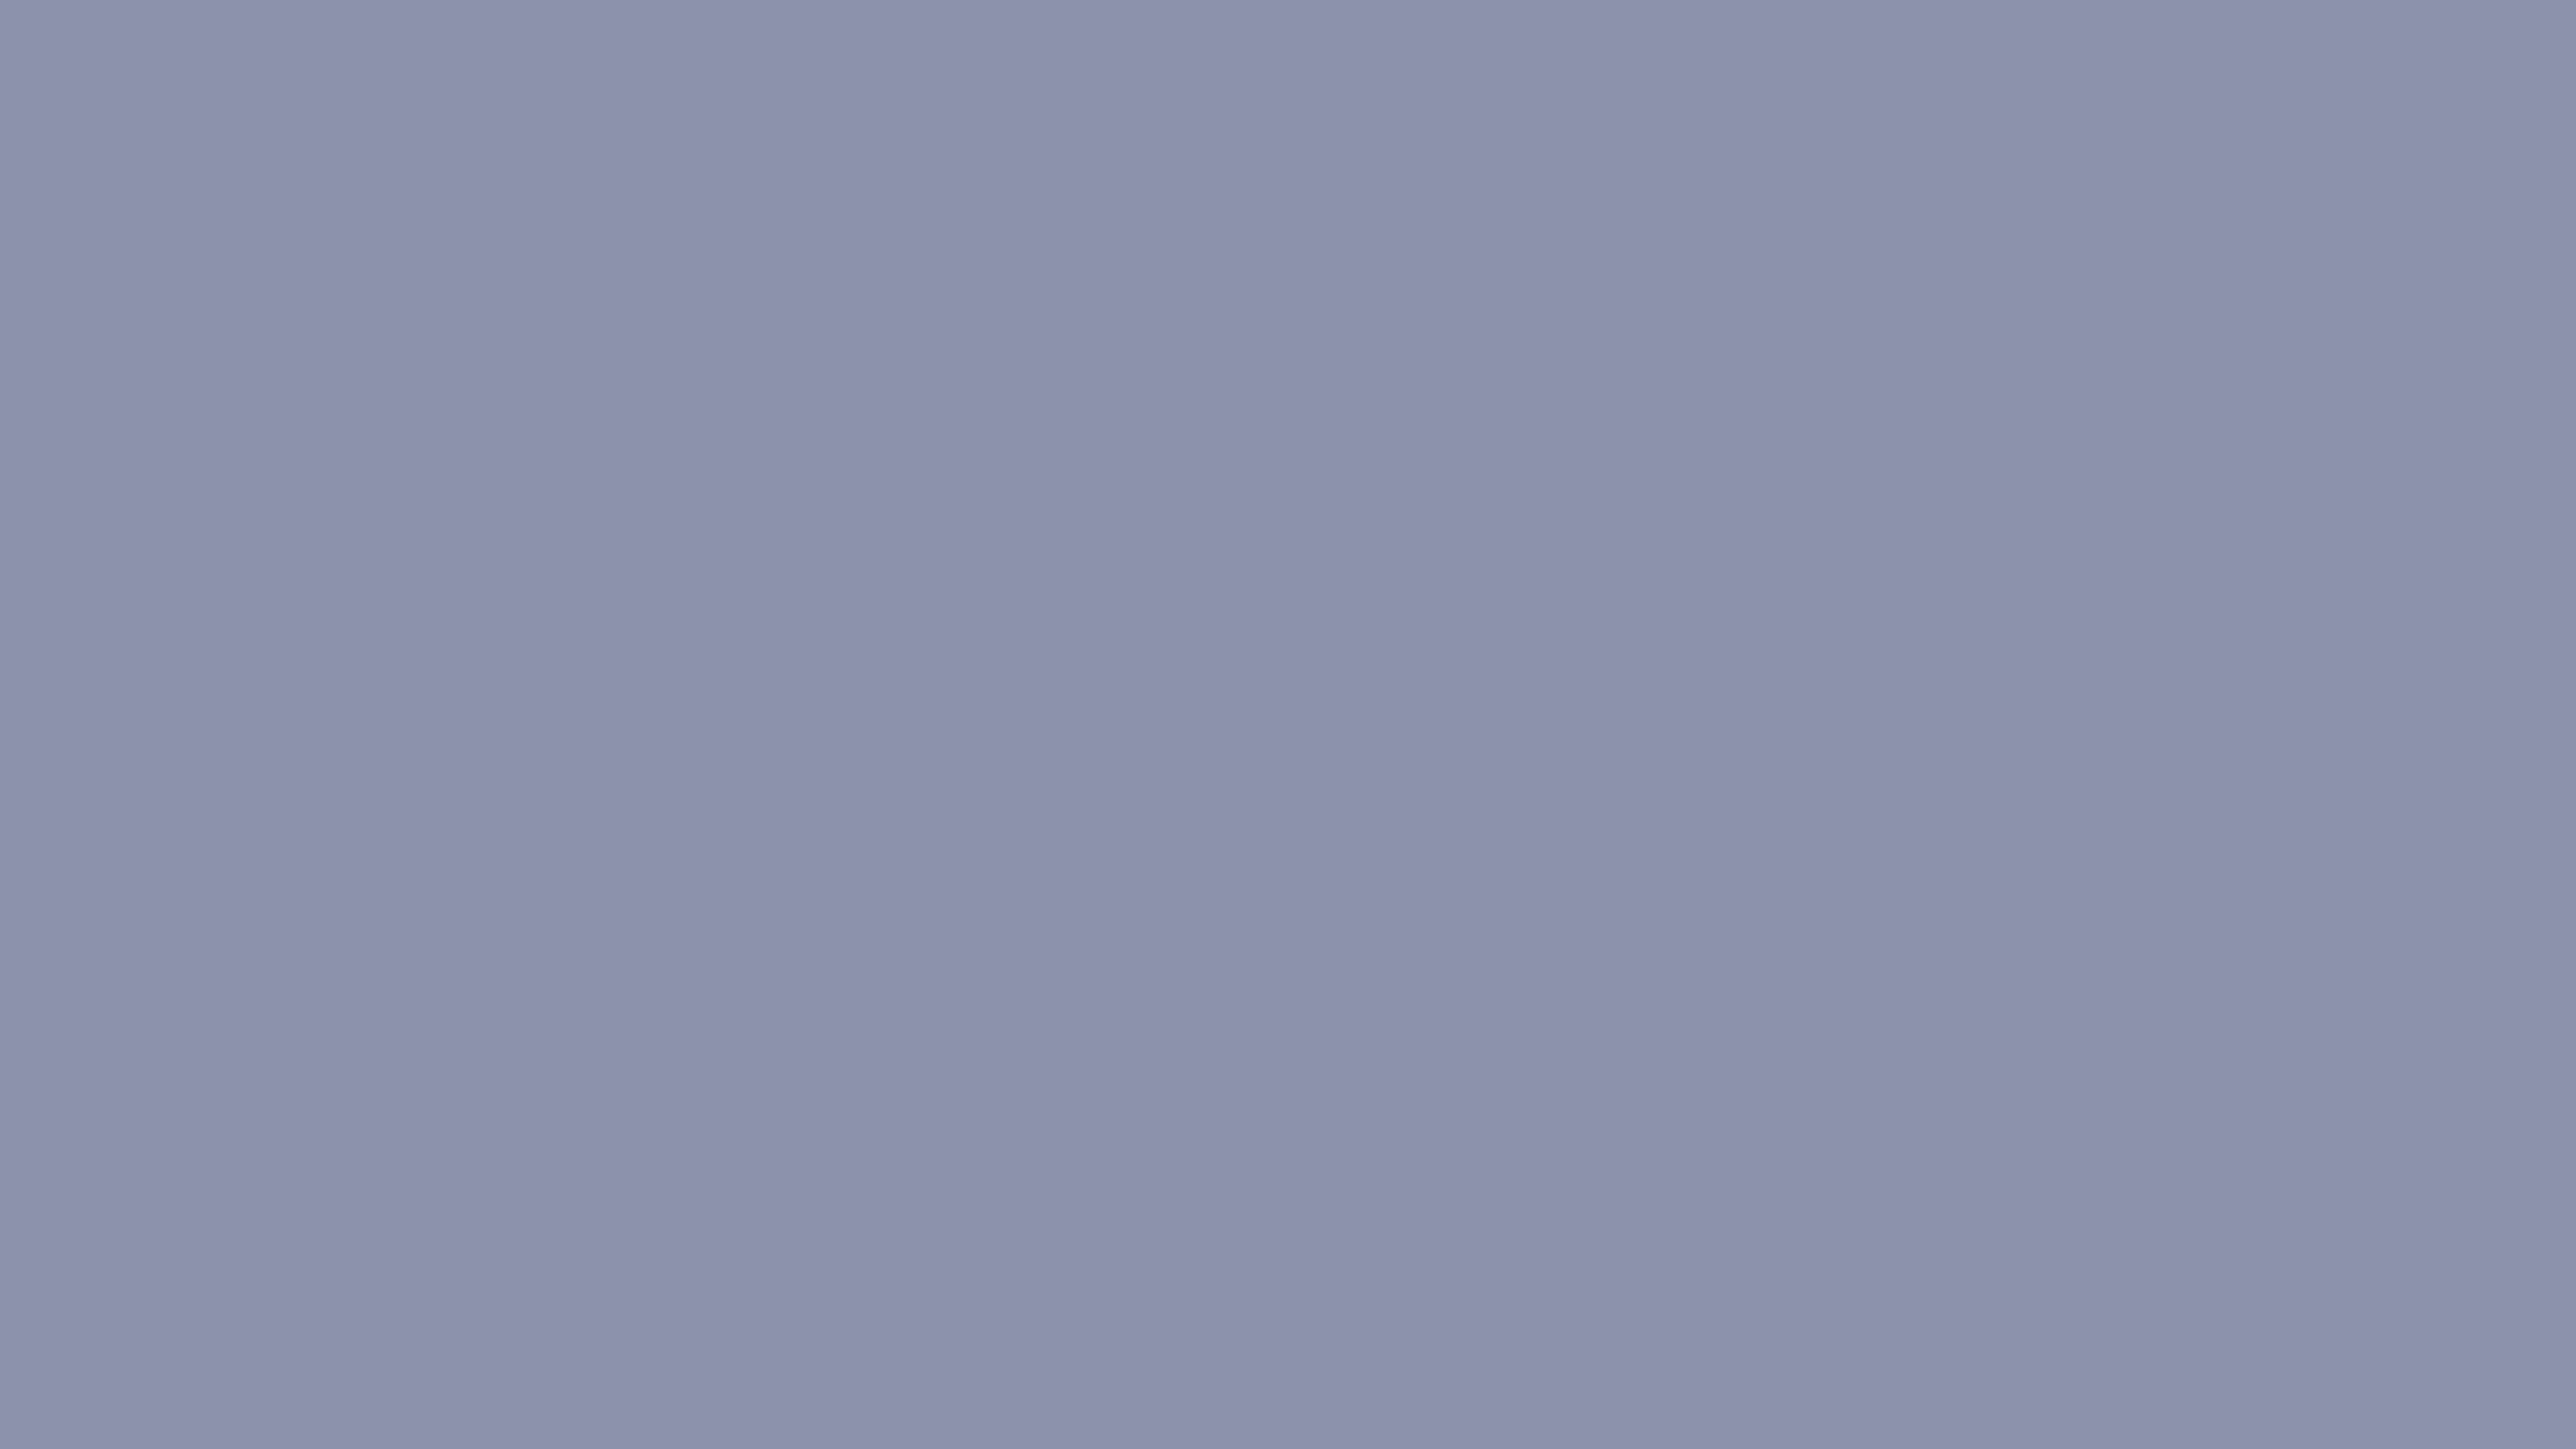 3840x2160 Gray-blue Solid Color Background